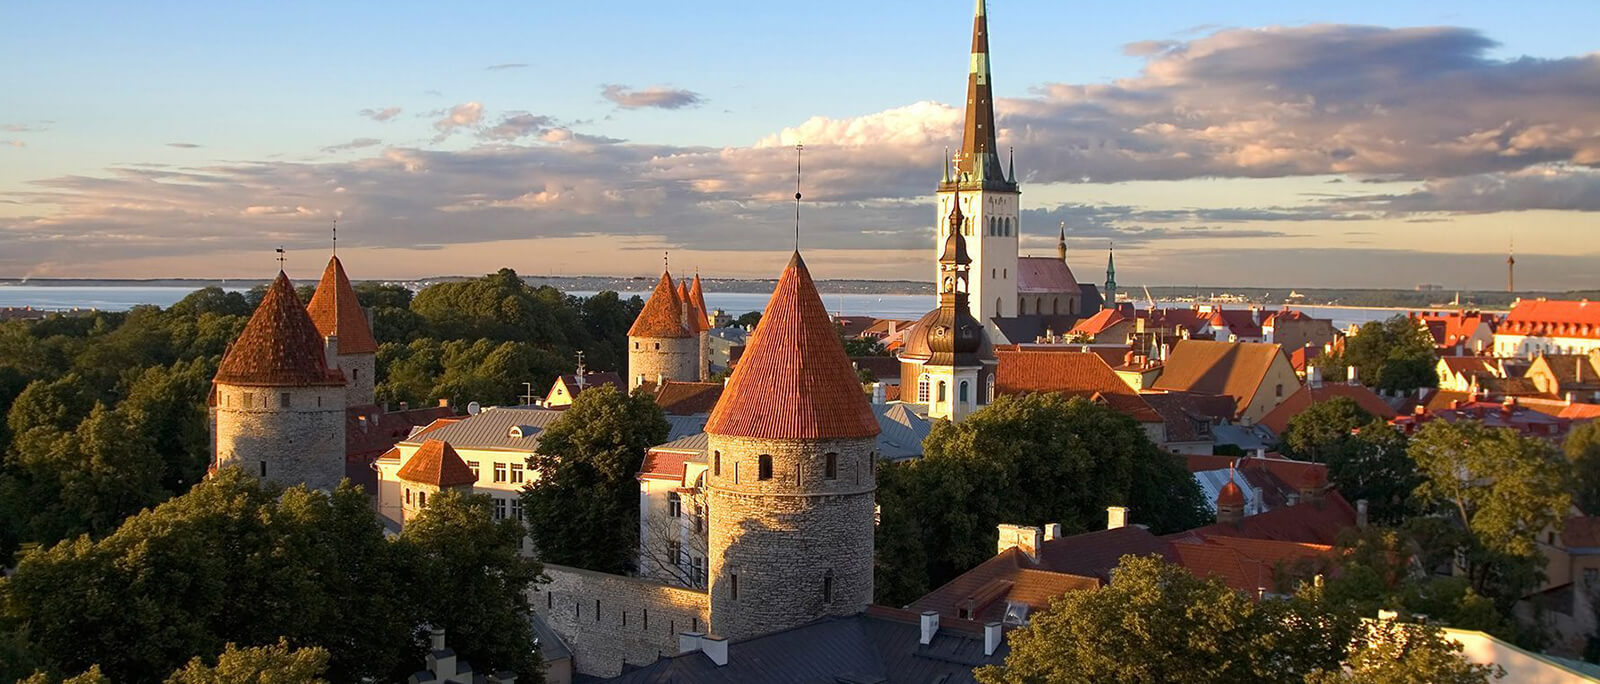 Tallinn, Estland | Dental Training Cruise